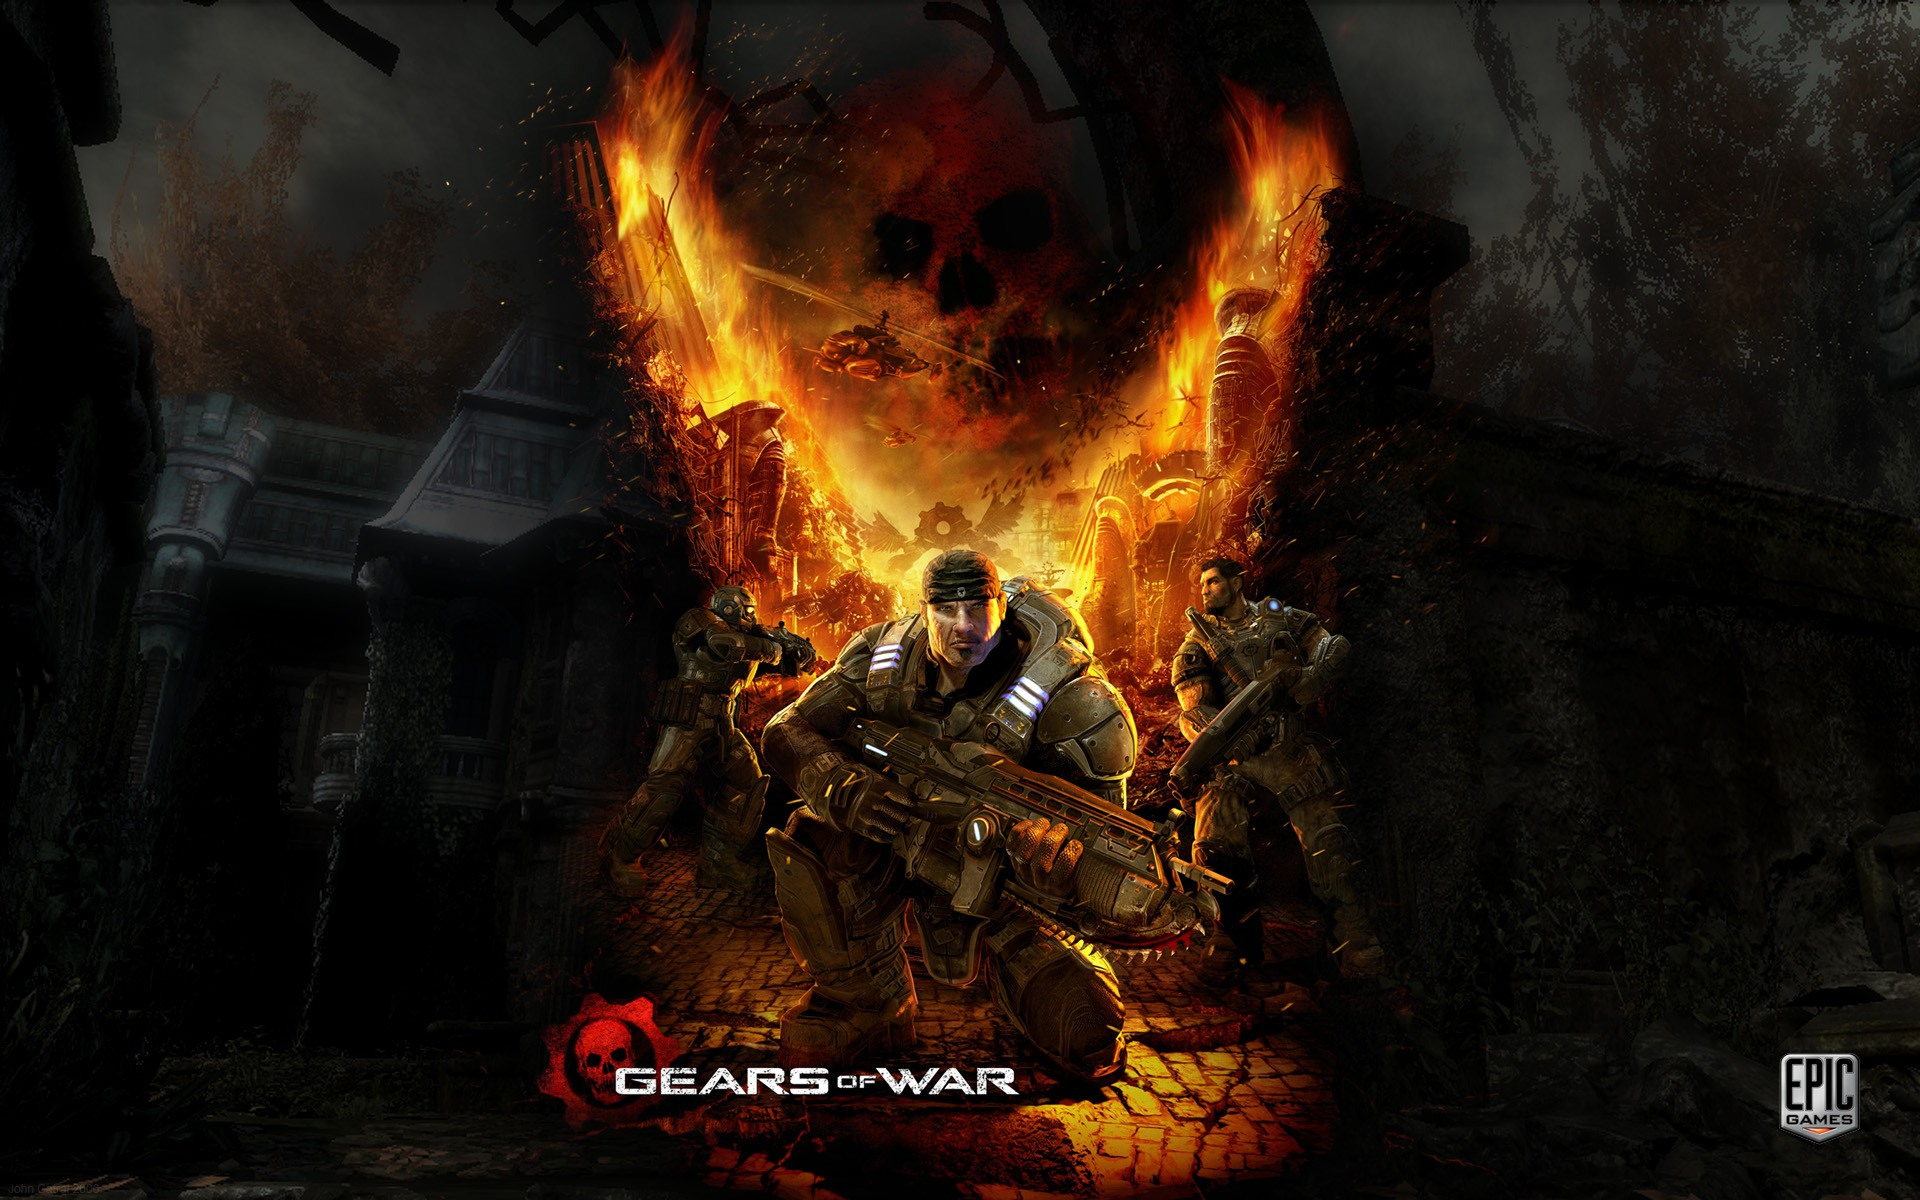 gears of war wallpapers | gears of war stock photos